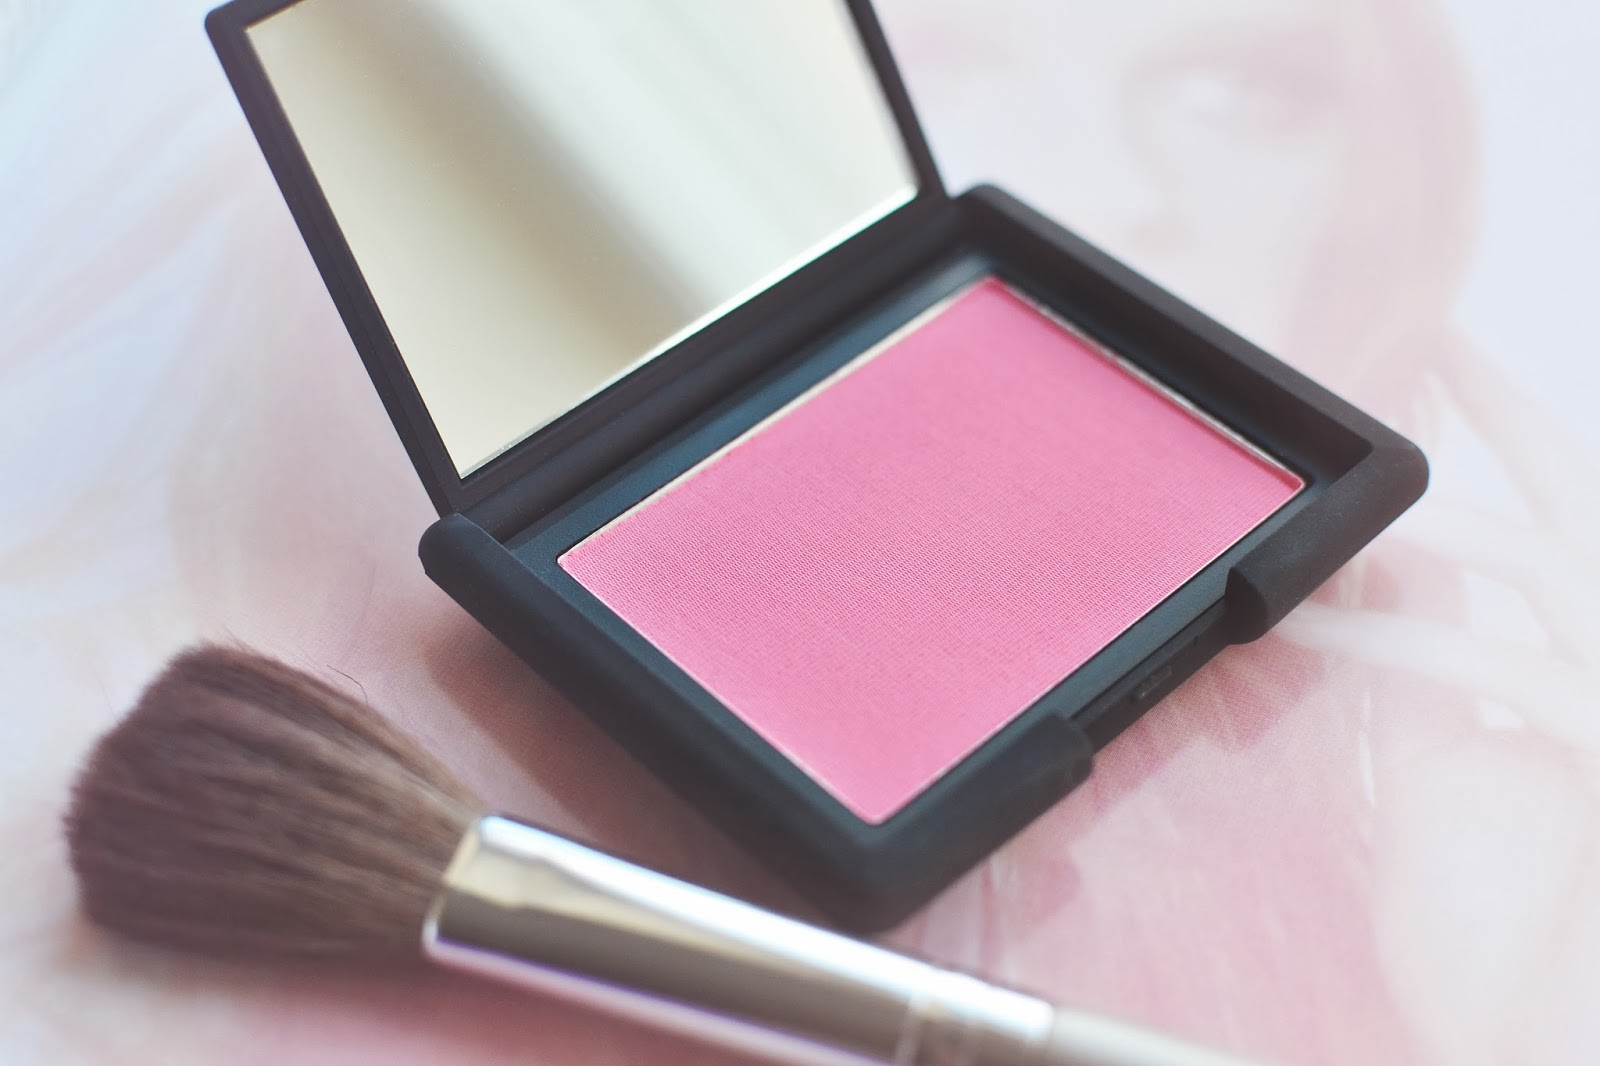 nars blusher review, new attitude blusher review, pink blushers for chinese skintone